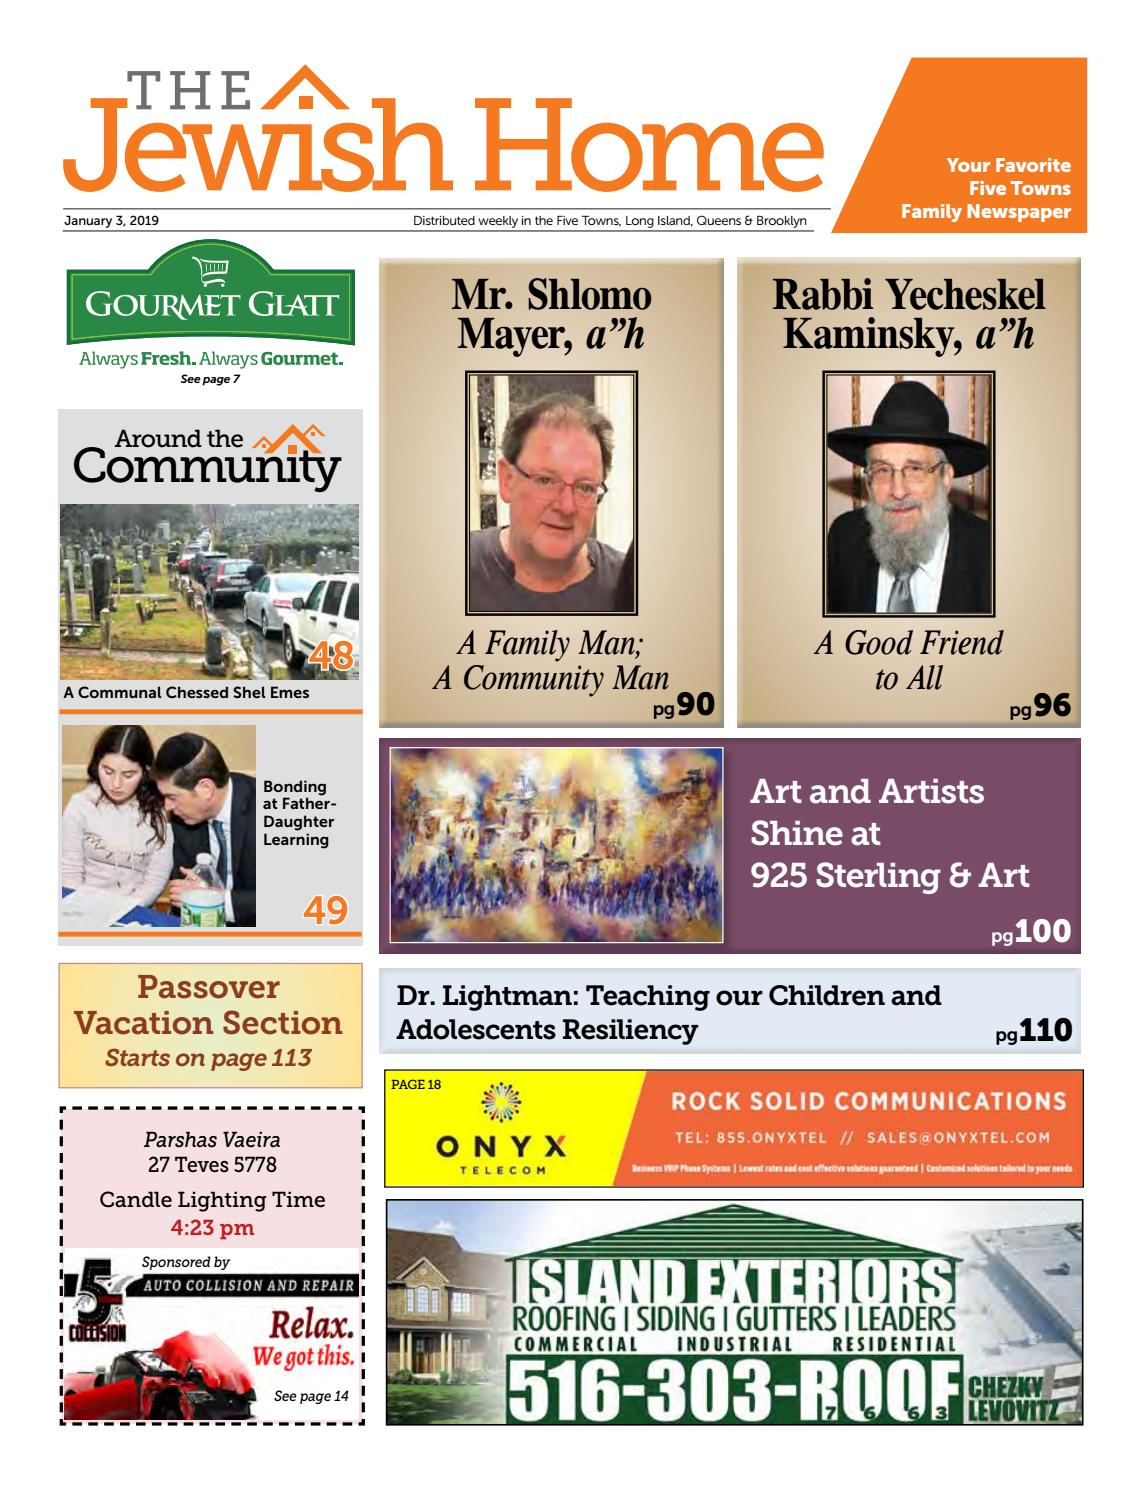 Five Towns Jewish Home - 1-3-19 by Yitzy Halpern - issuu